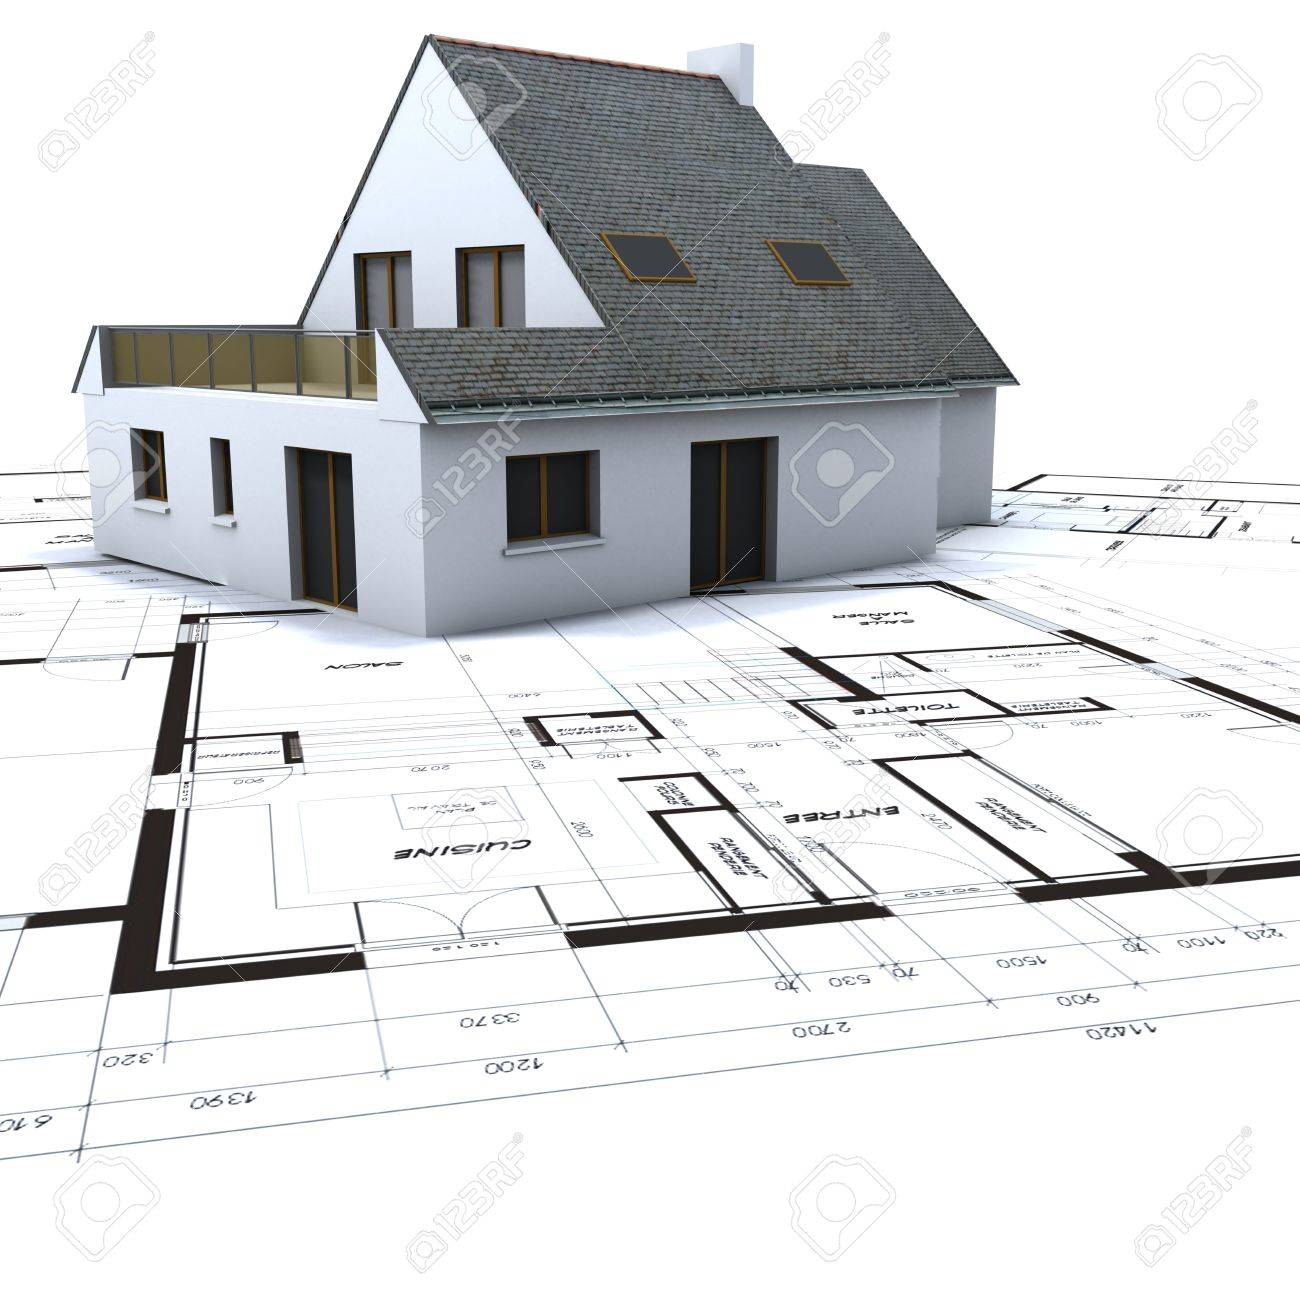 Architectural model on top of architect s blueprints against a white background Stock Photo - 15941663